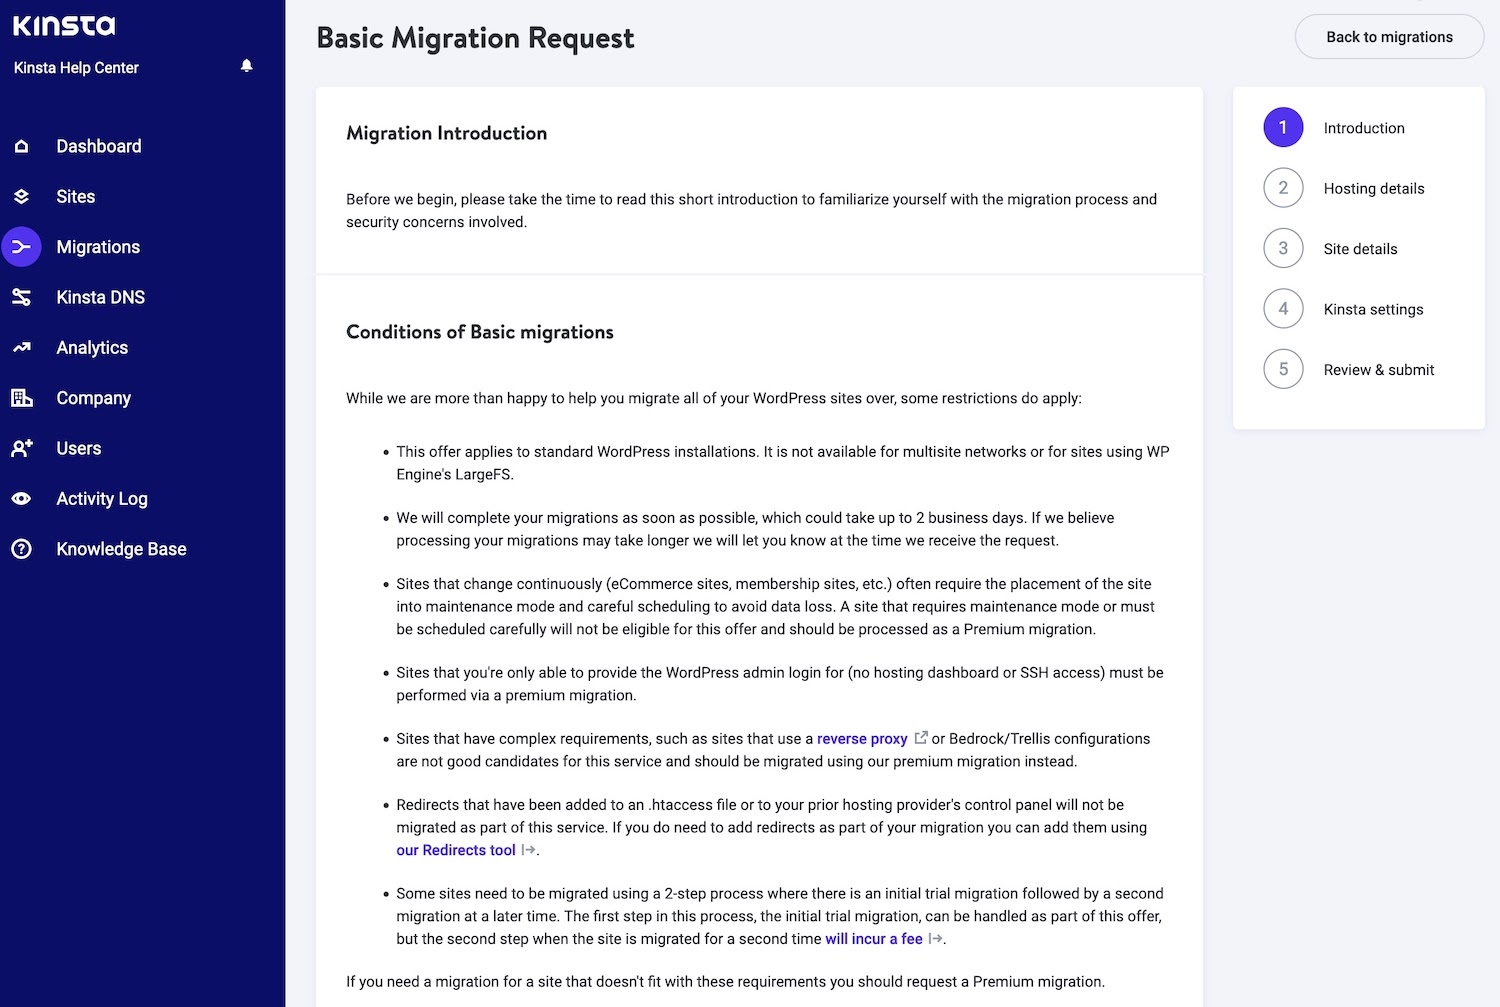 Condition and other into to start the migration process